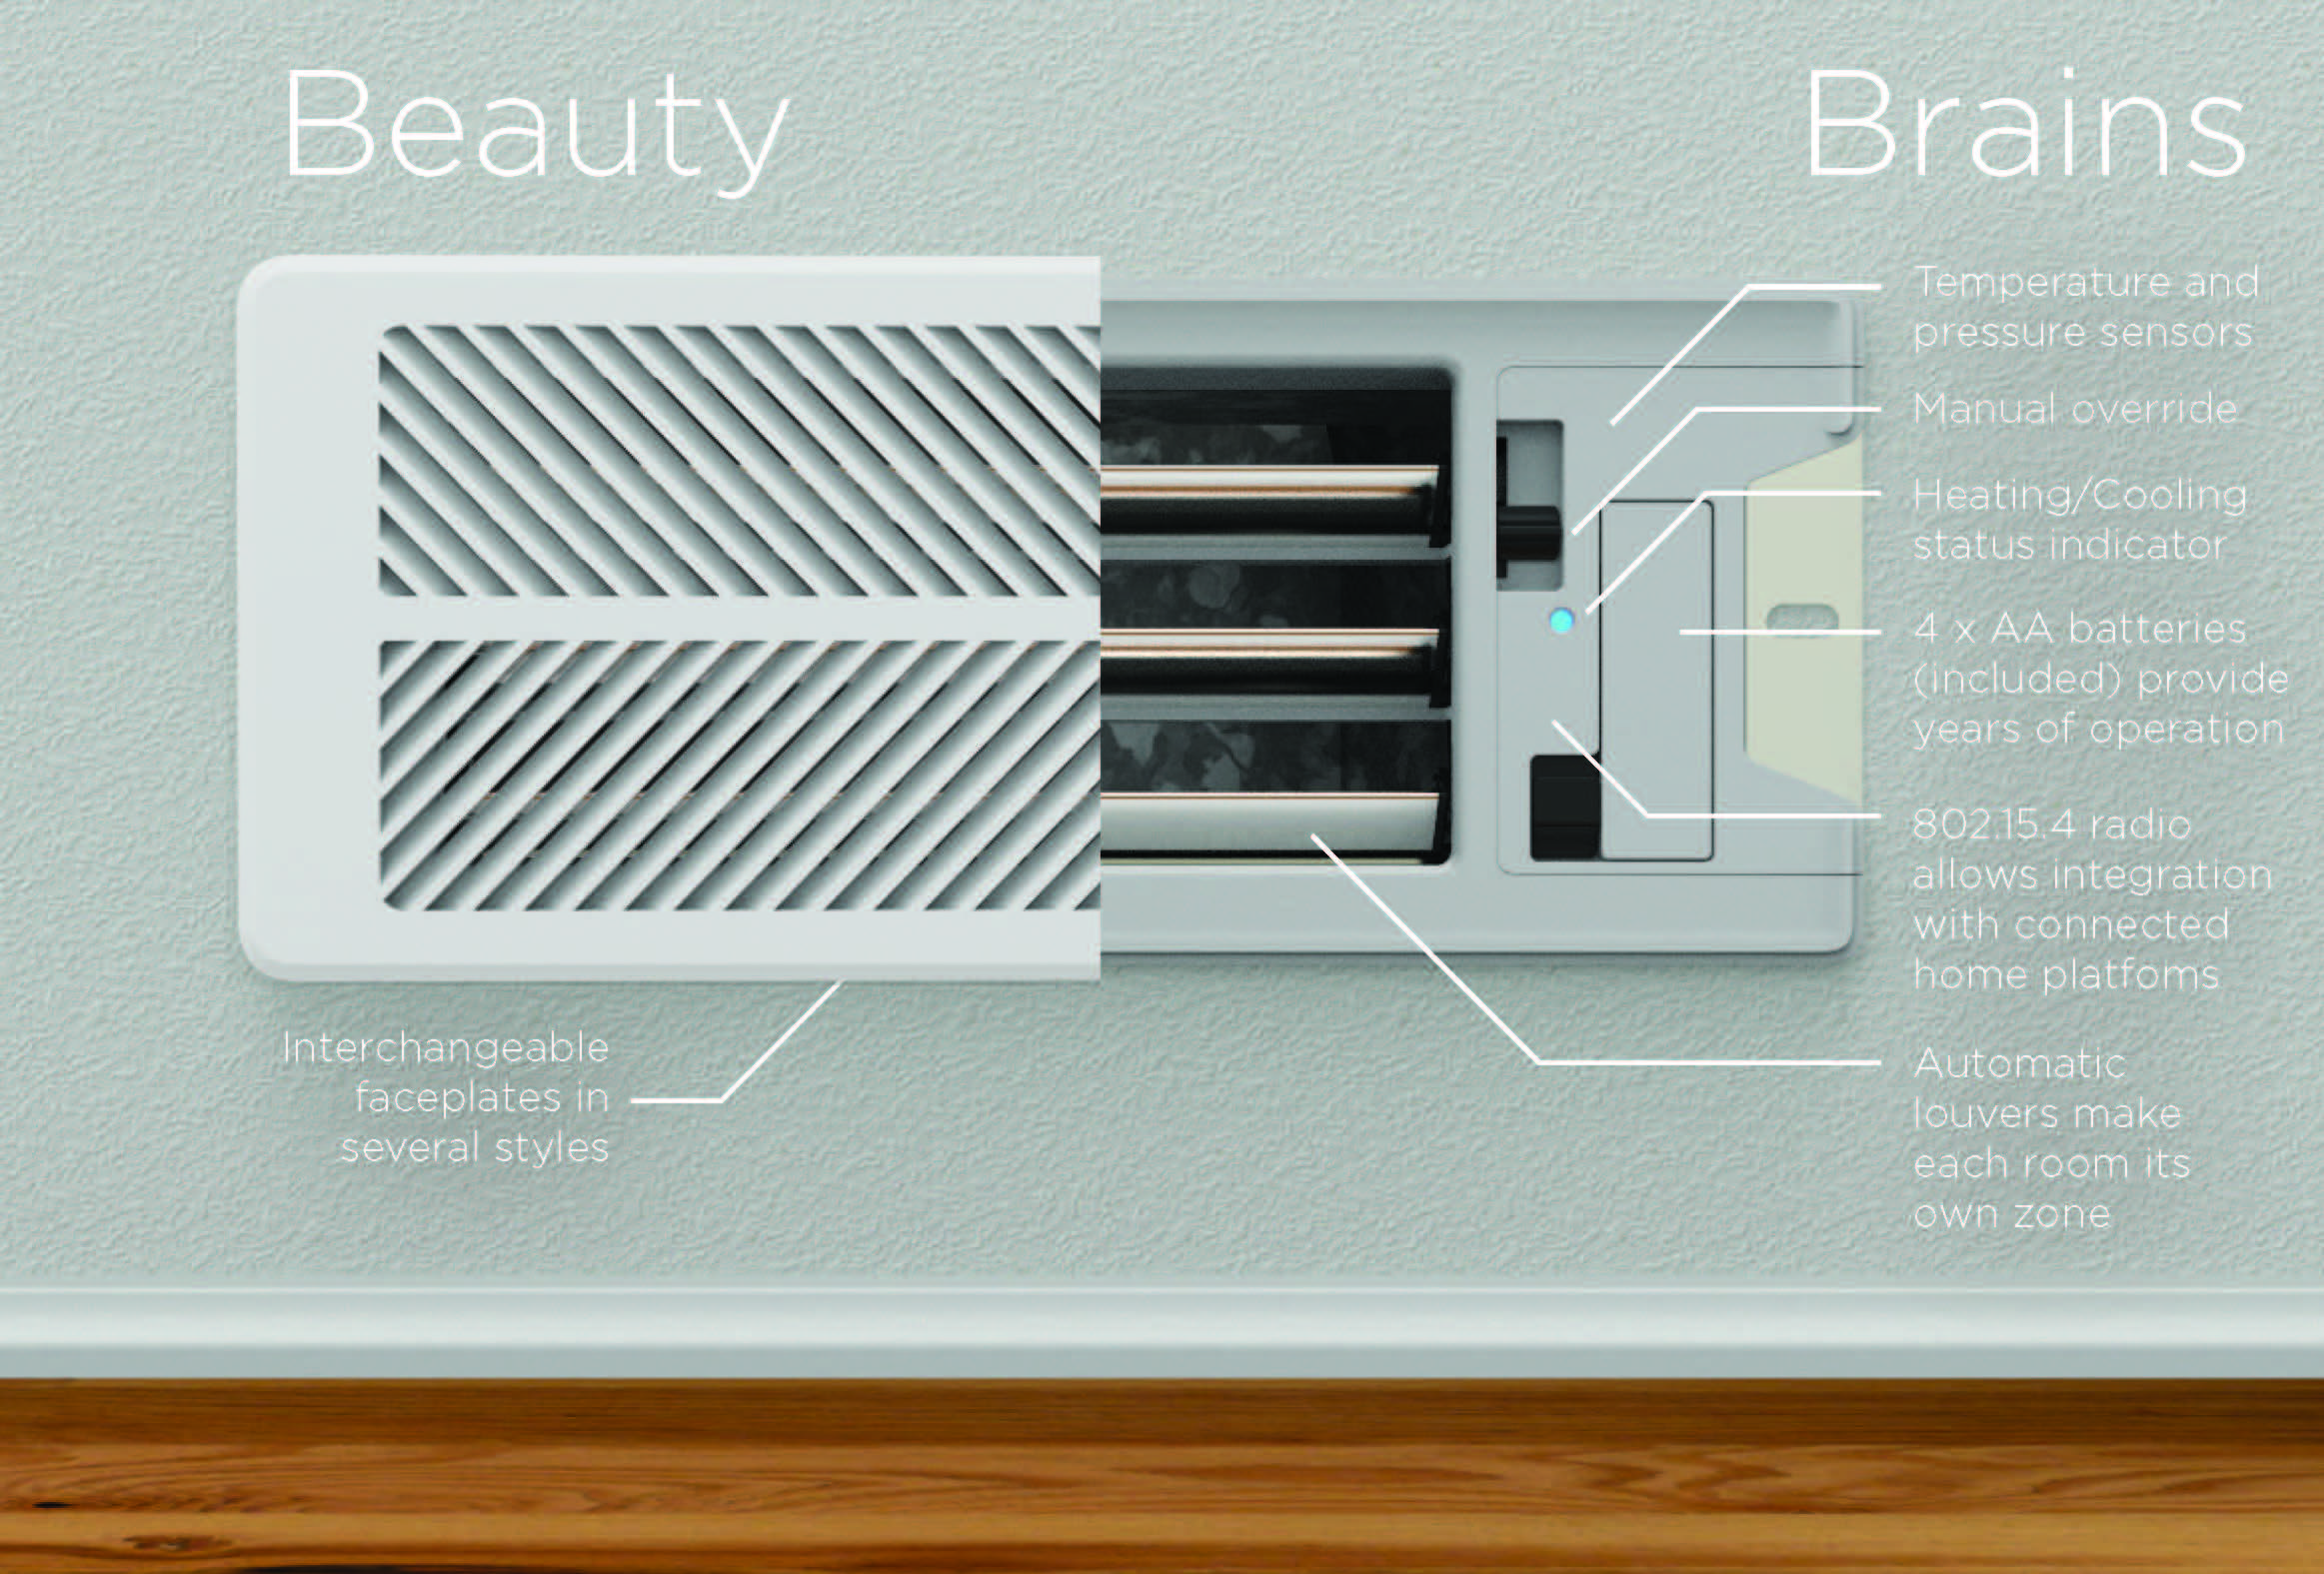 Beauty and Brains, all in one device. Connected home